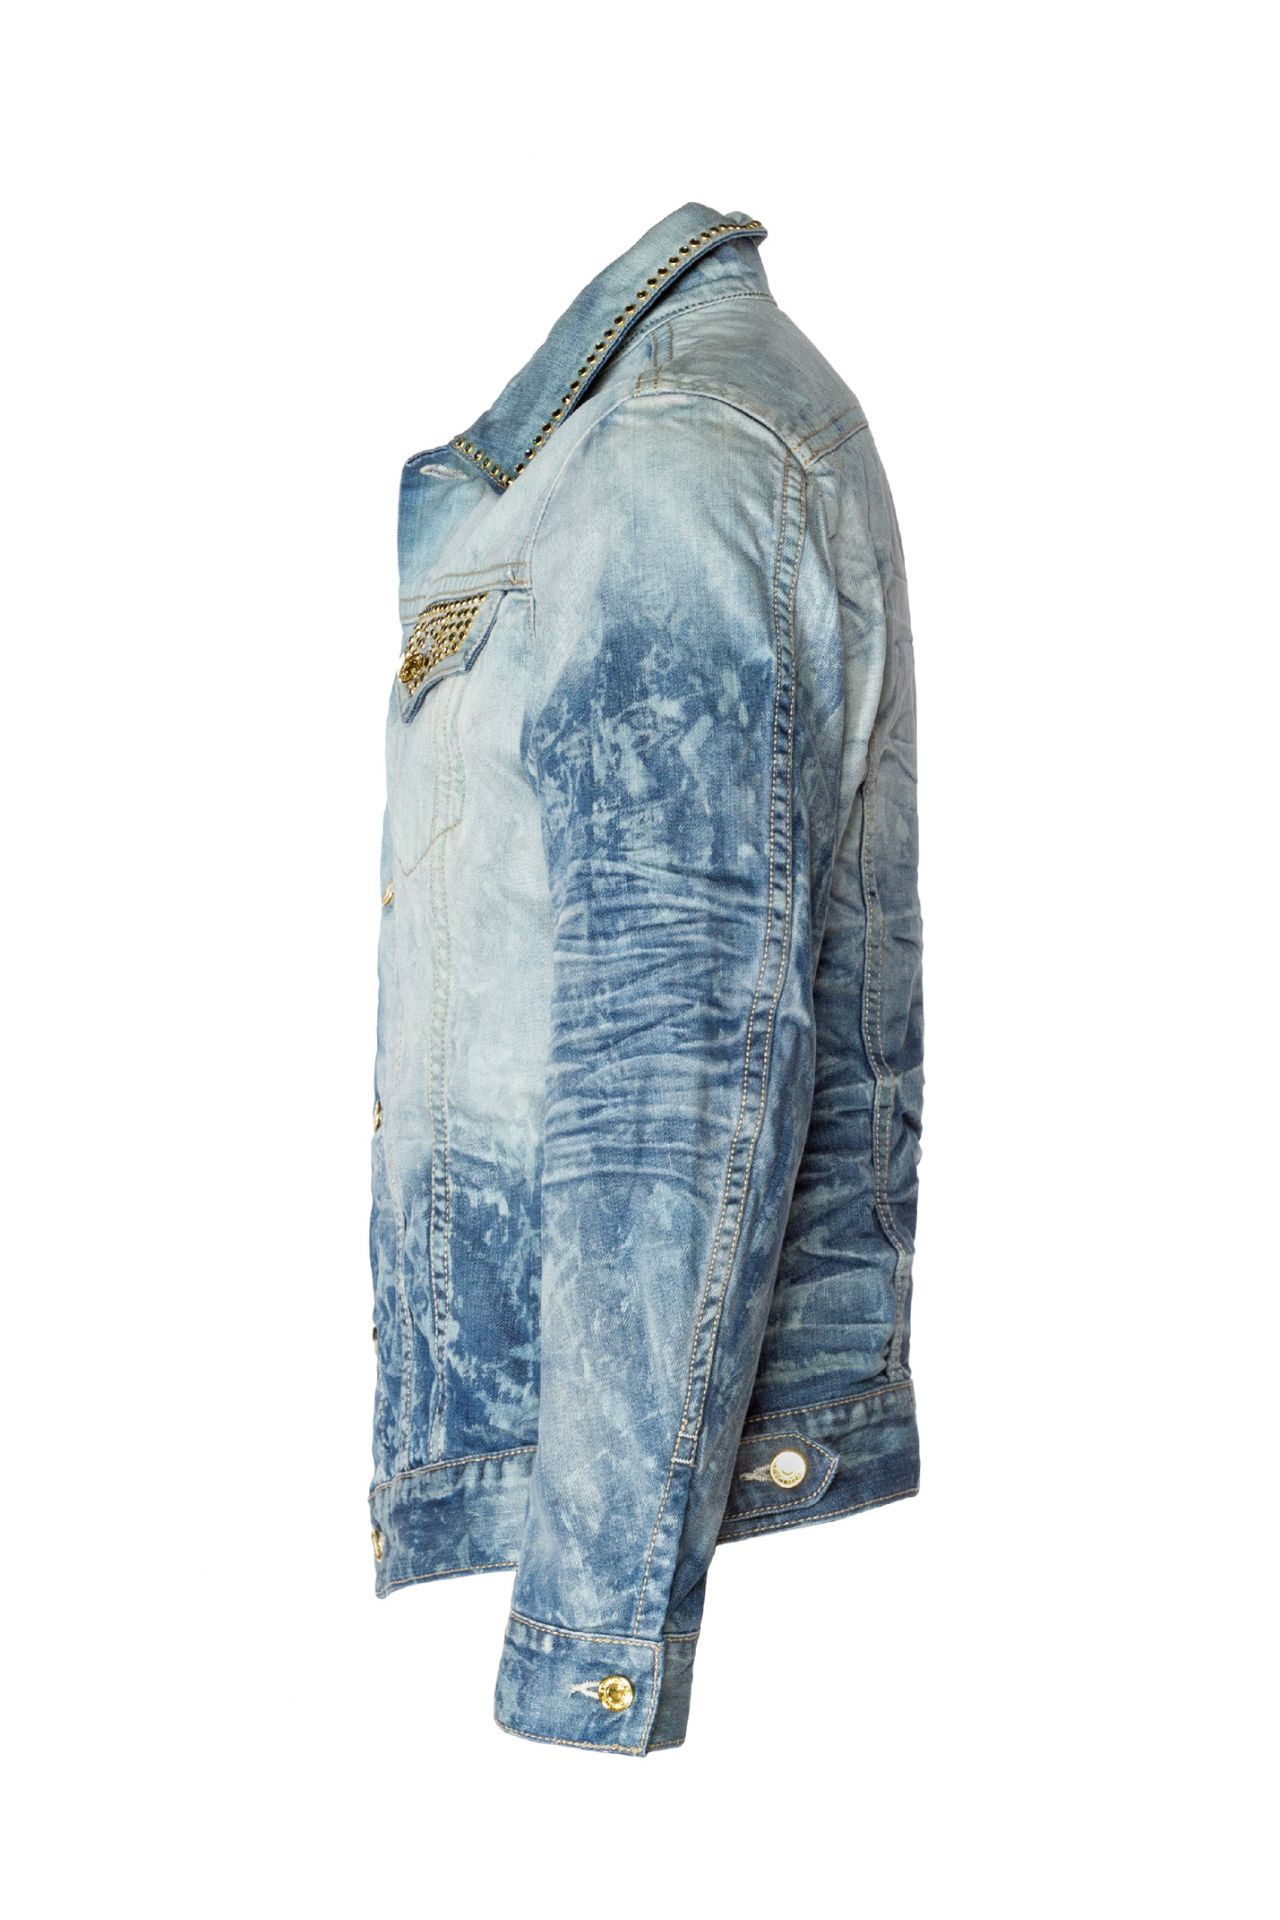 DENIM JACKET IN VINTAGE BLUE WITH CRYSTALS